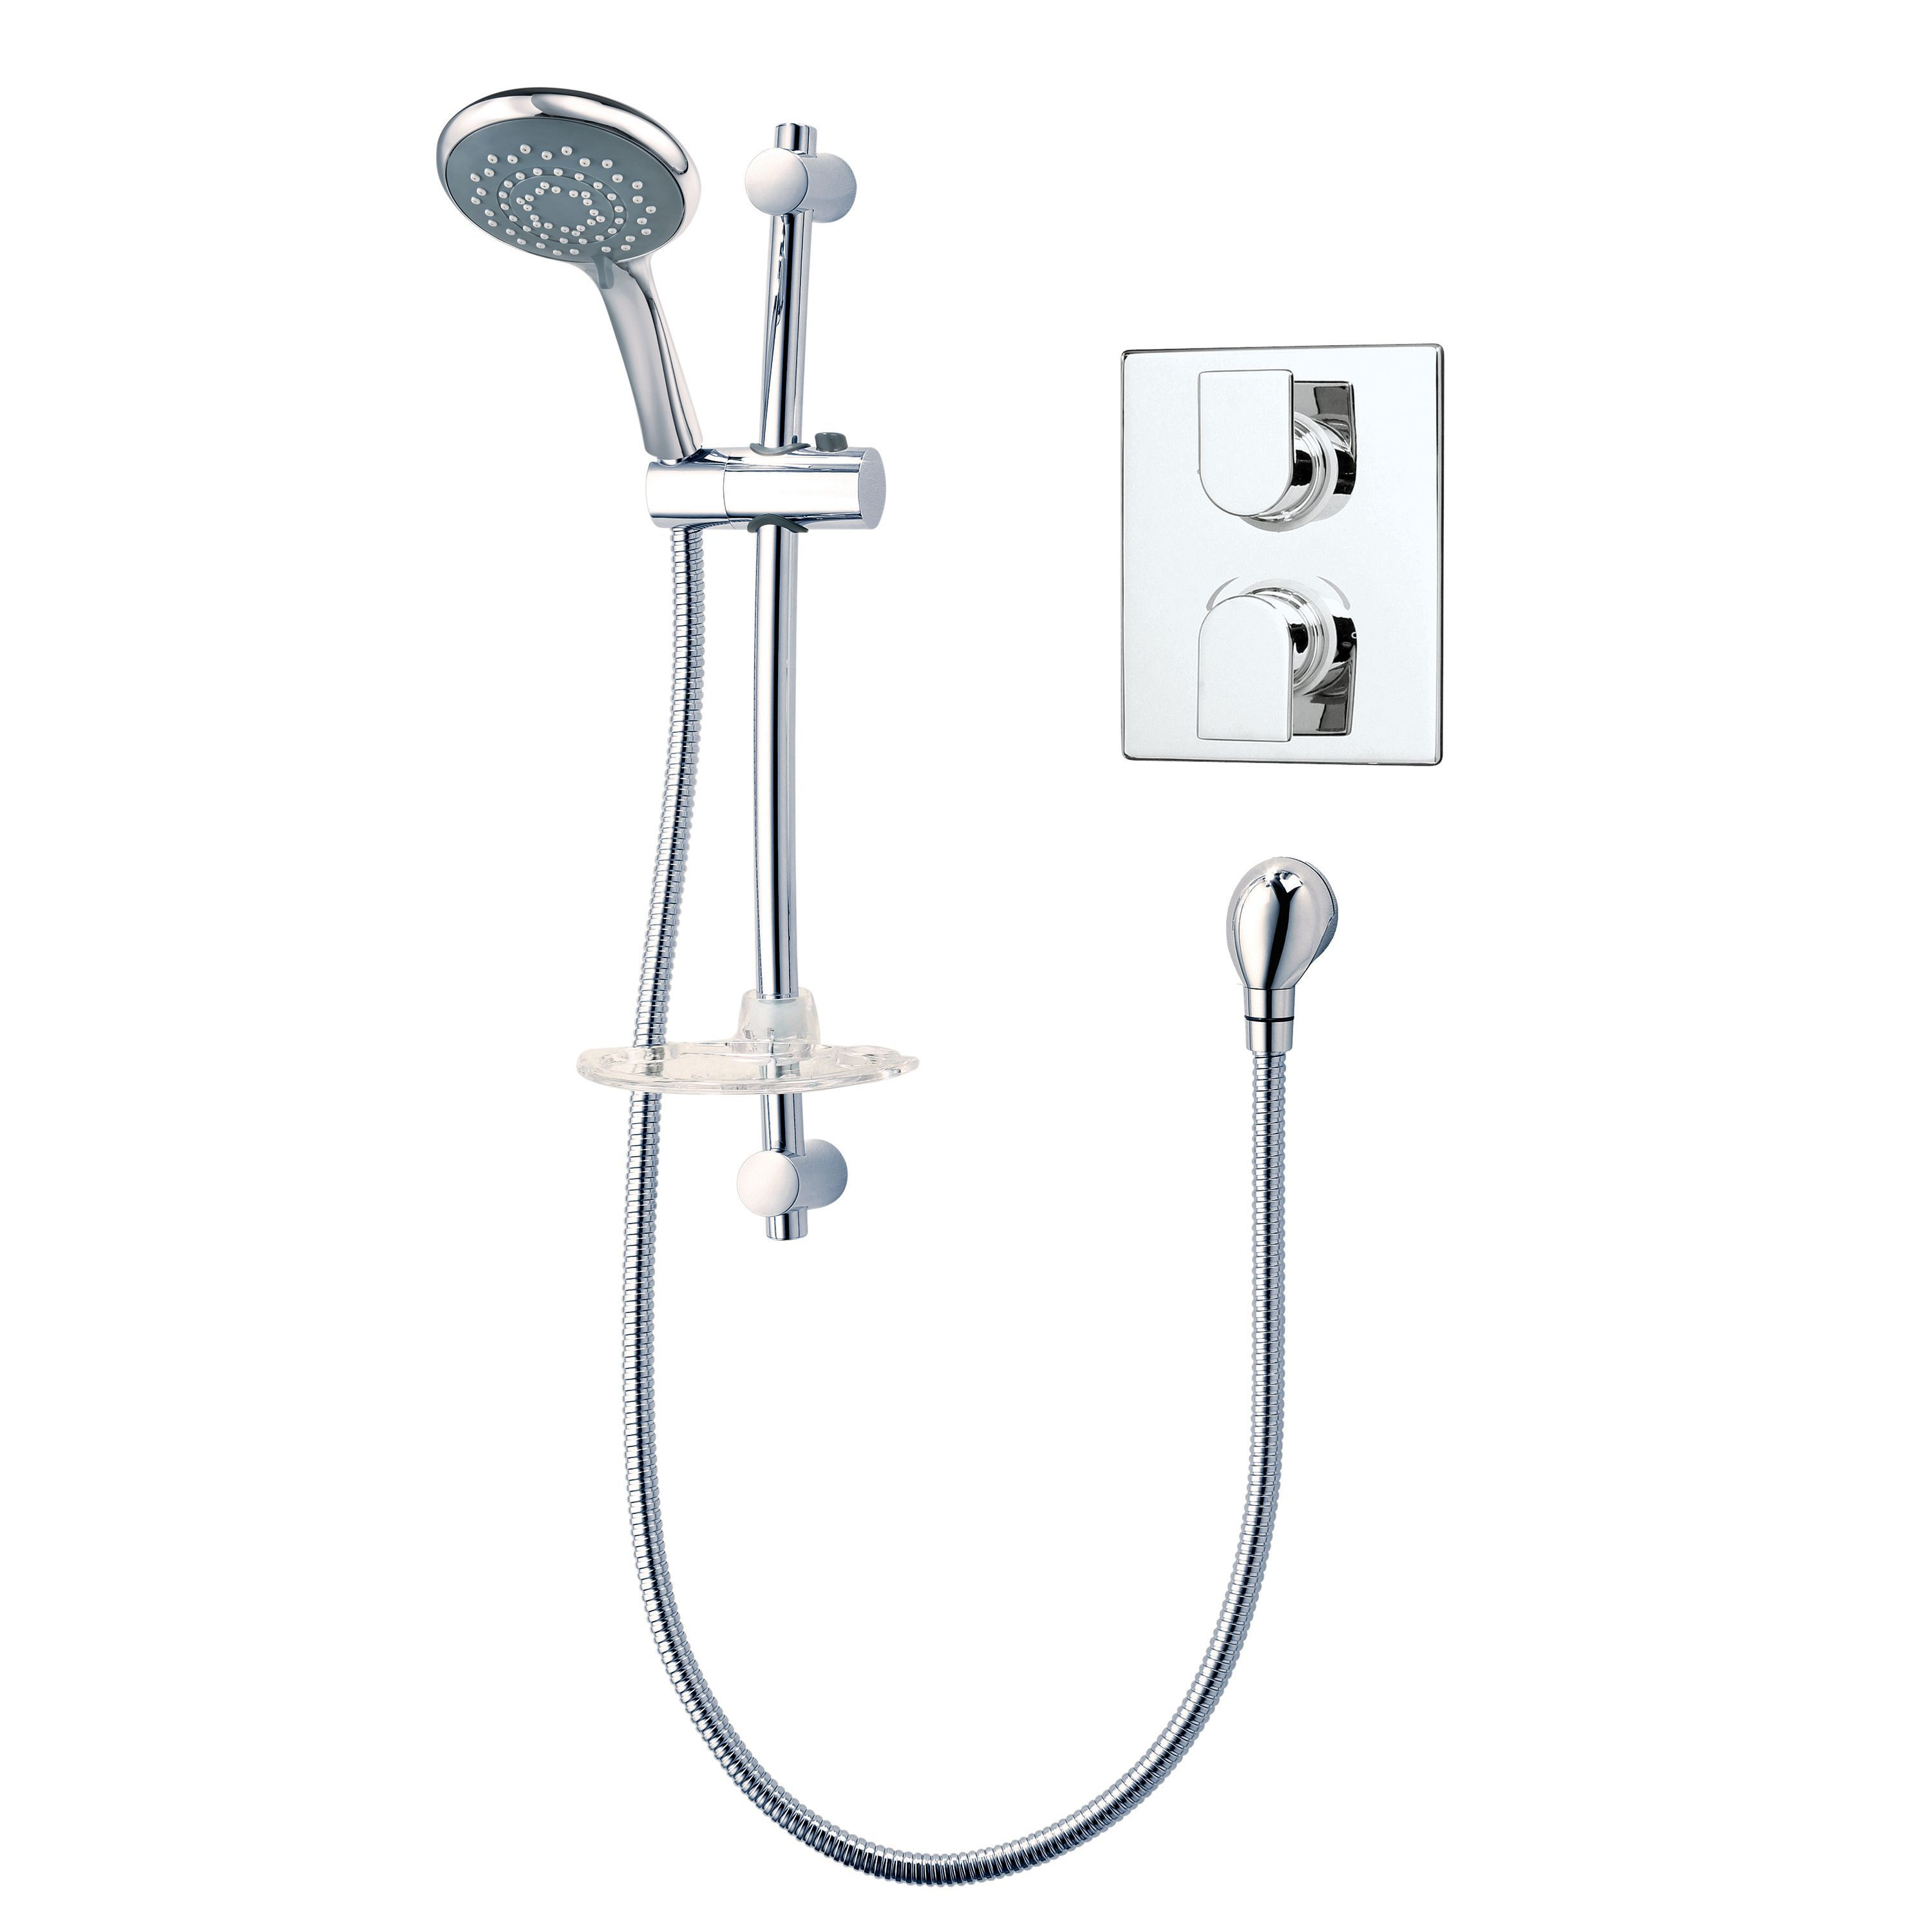 B And Q Bathrooms Suites. Image Result For B And Q Bathrooms Suites